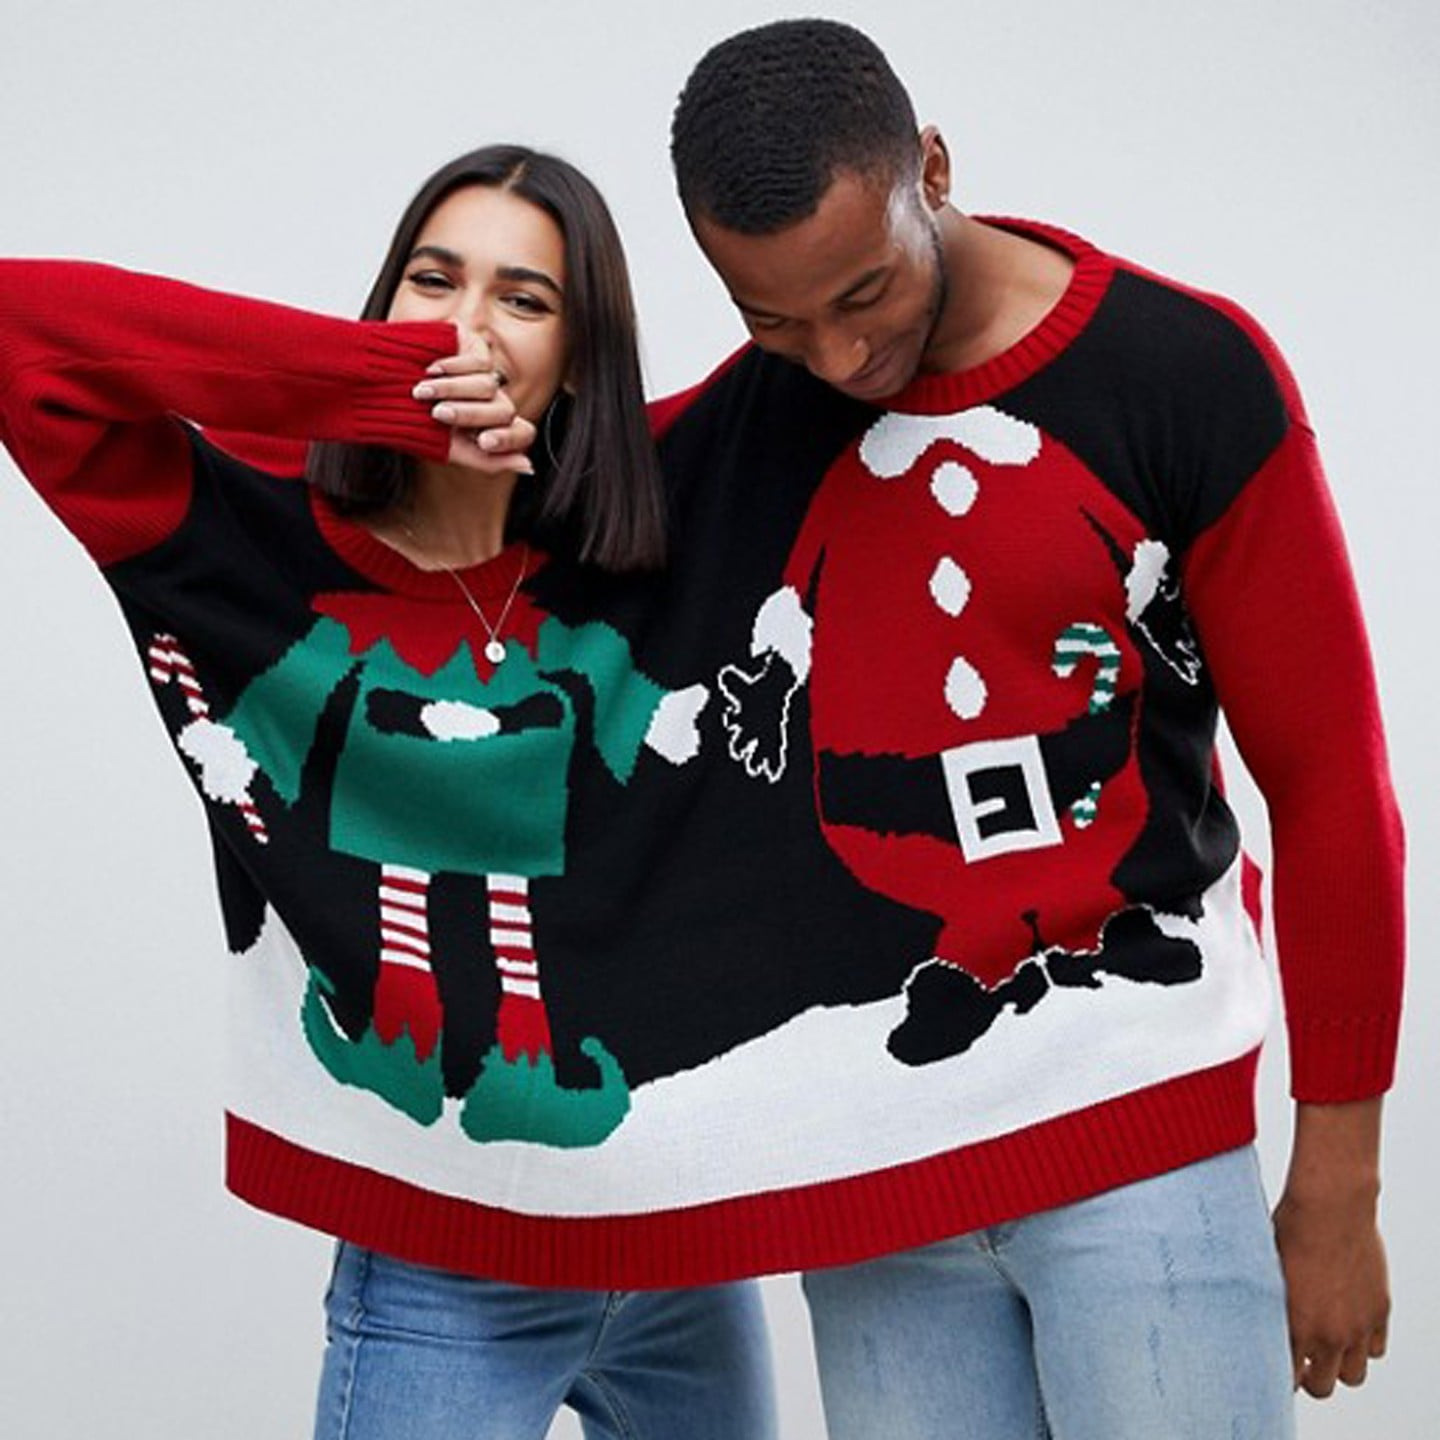 Superhero Ugly Christmas Sweaters.Ugly Christmas Sweater For Two Popsugar Love Sex